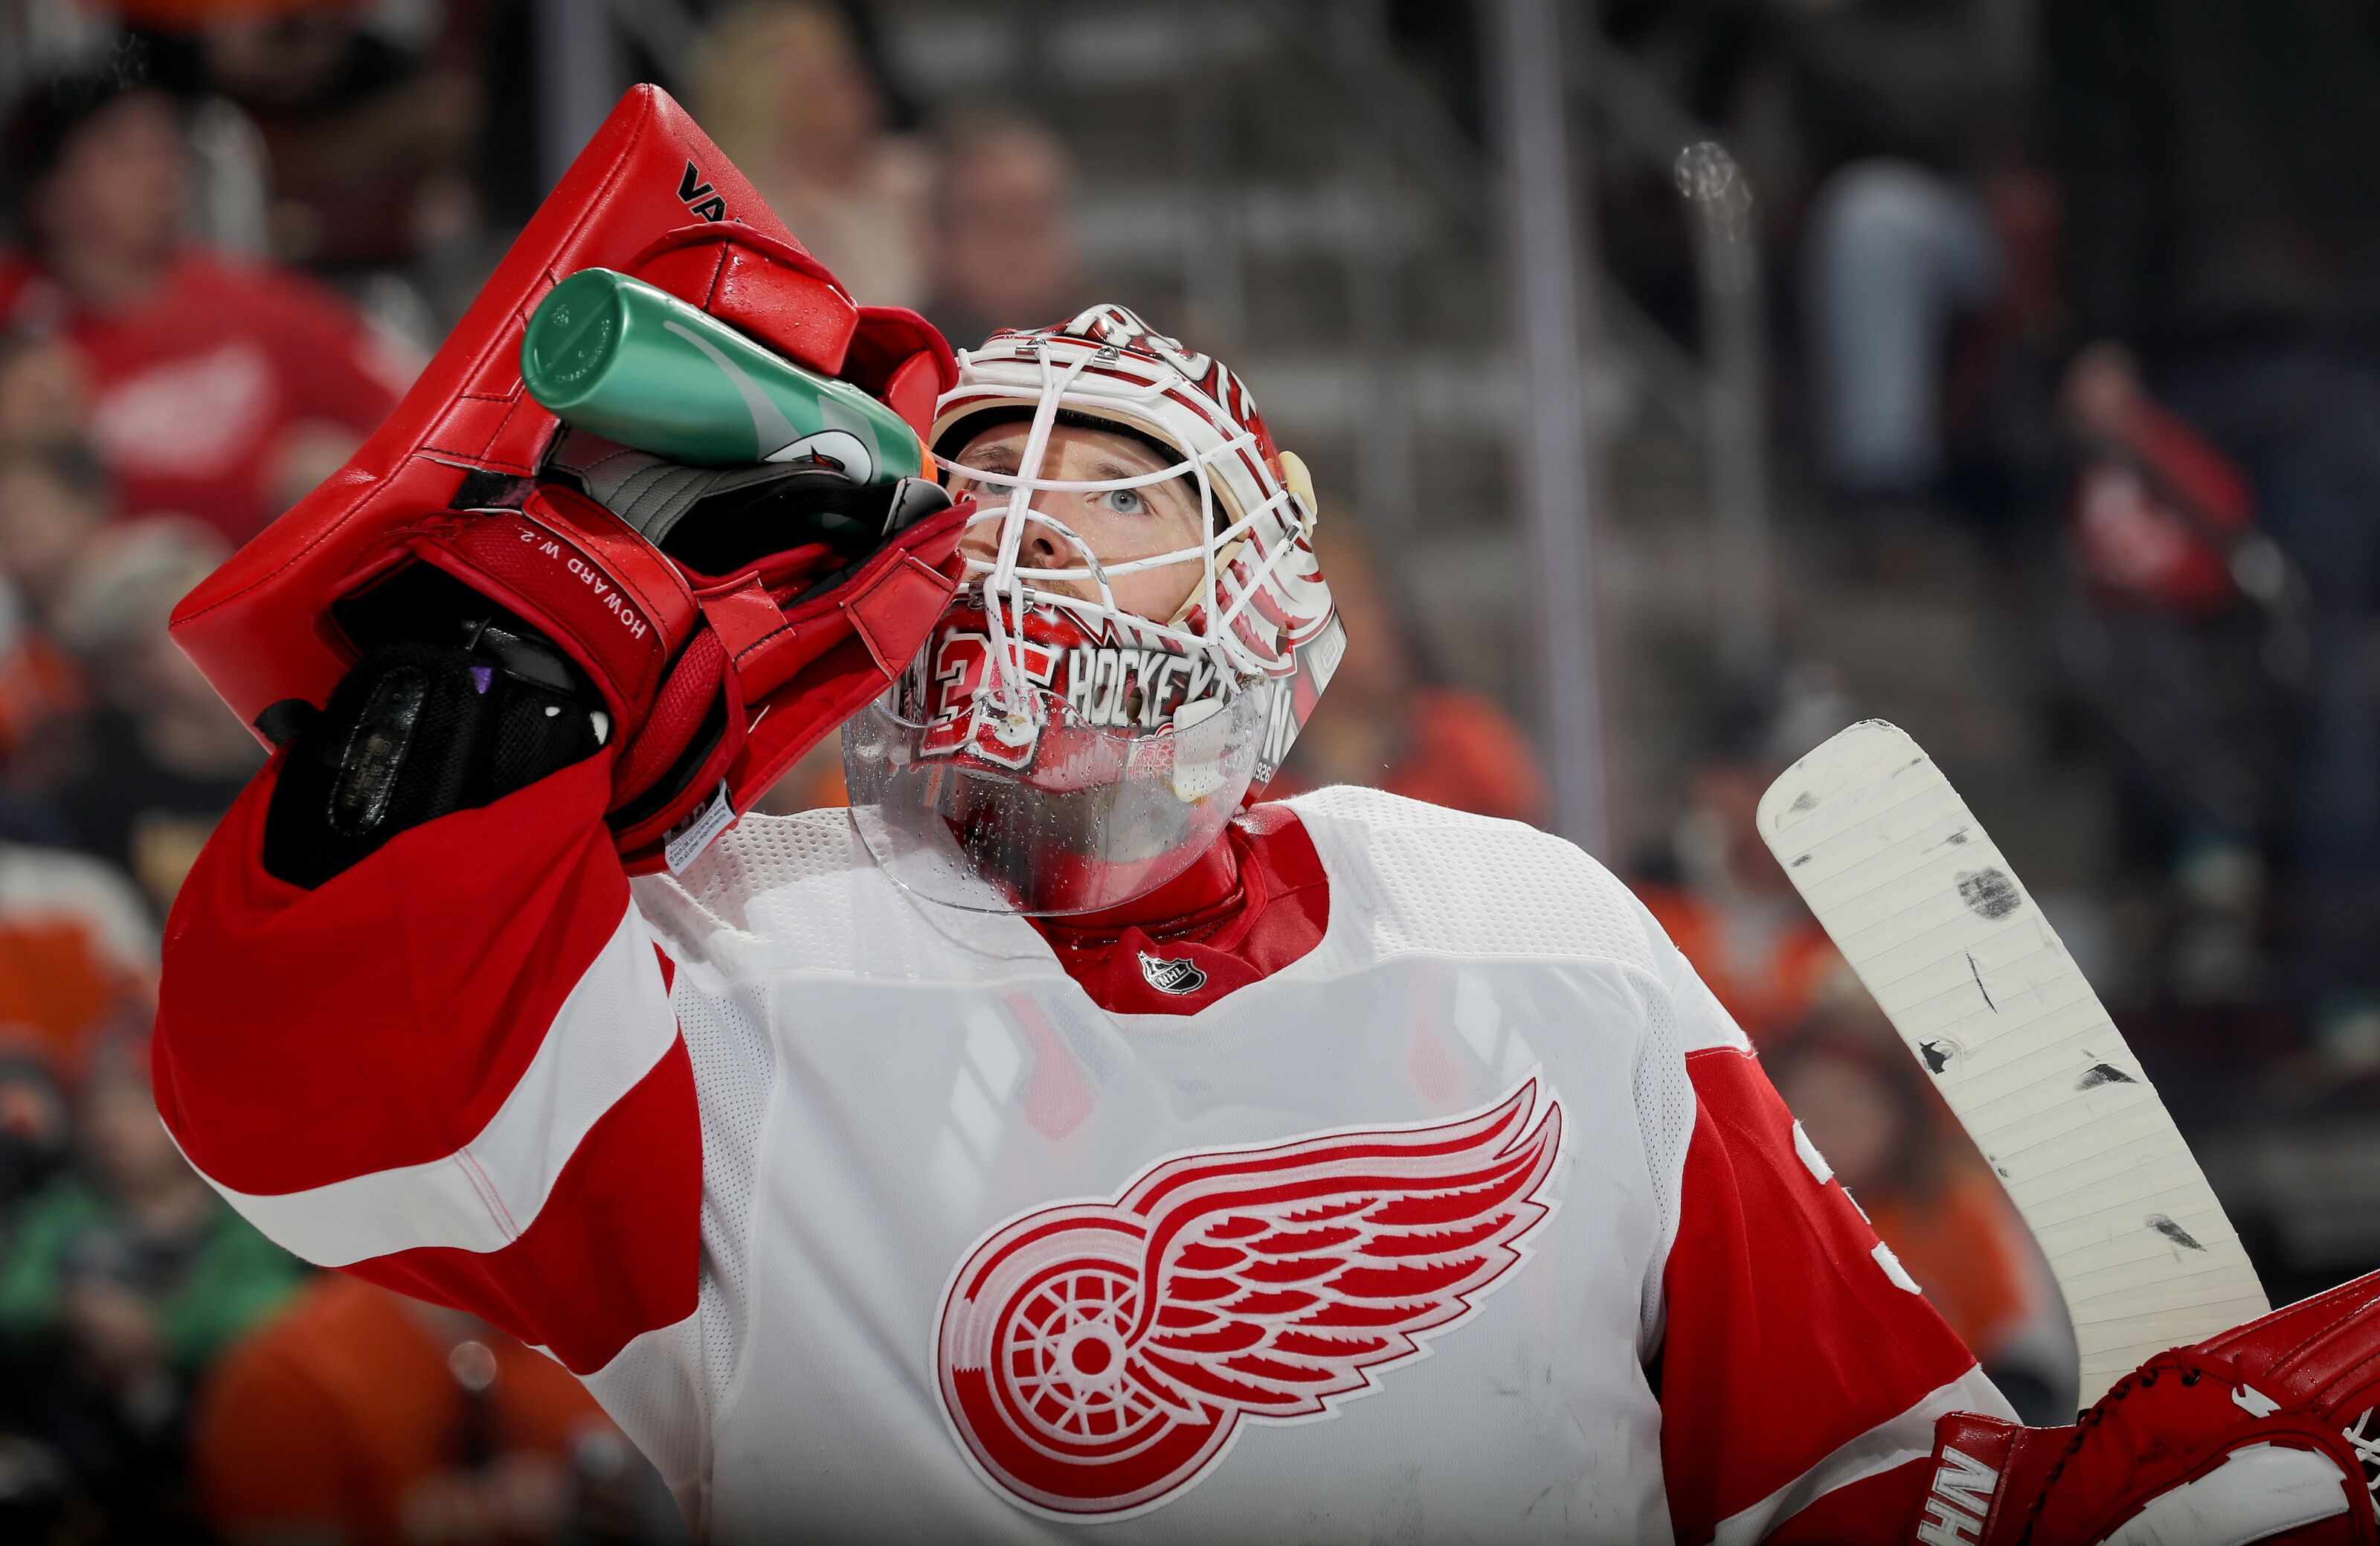 Detroit Red Wings: A farewell tour for Jimmy Howard in Detroit?